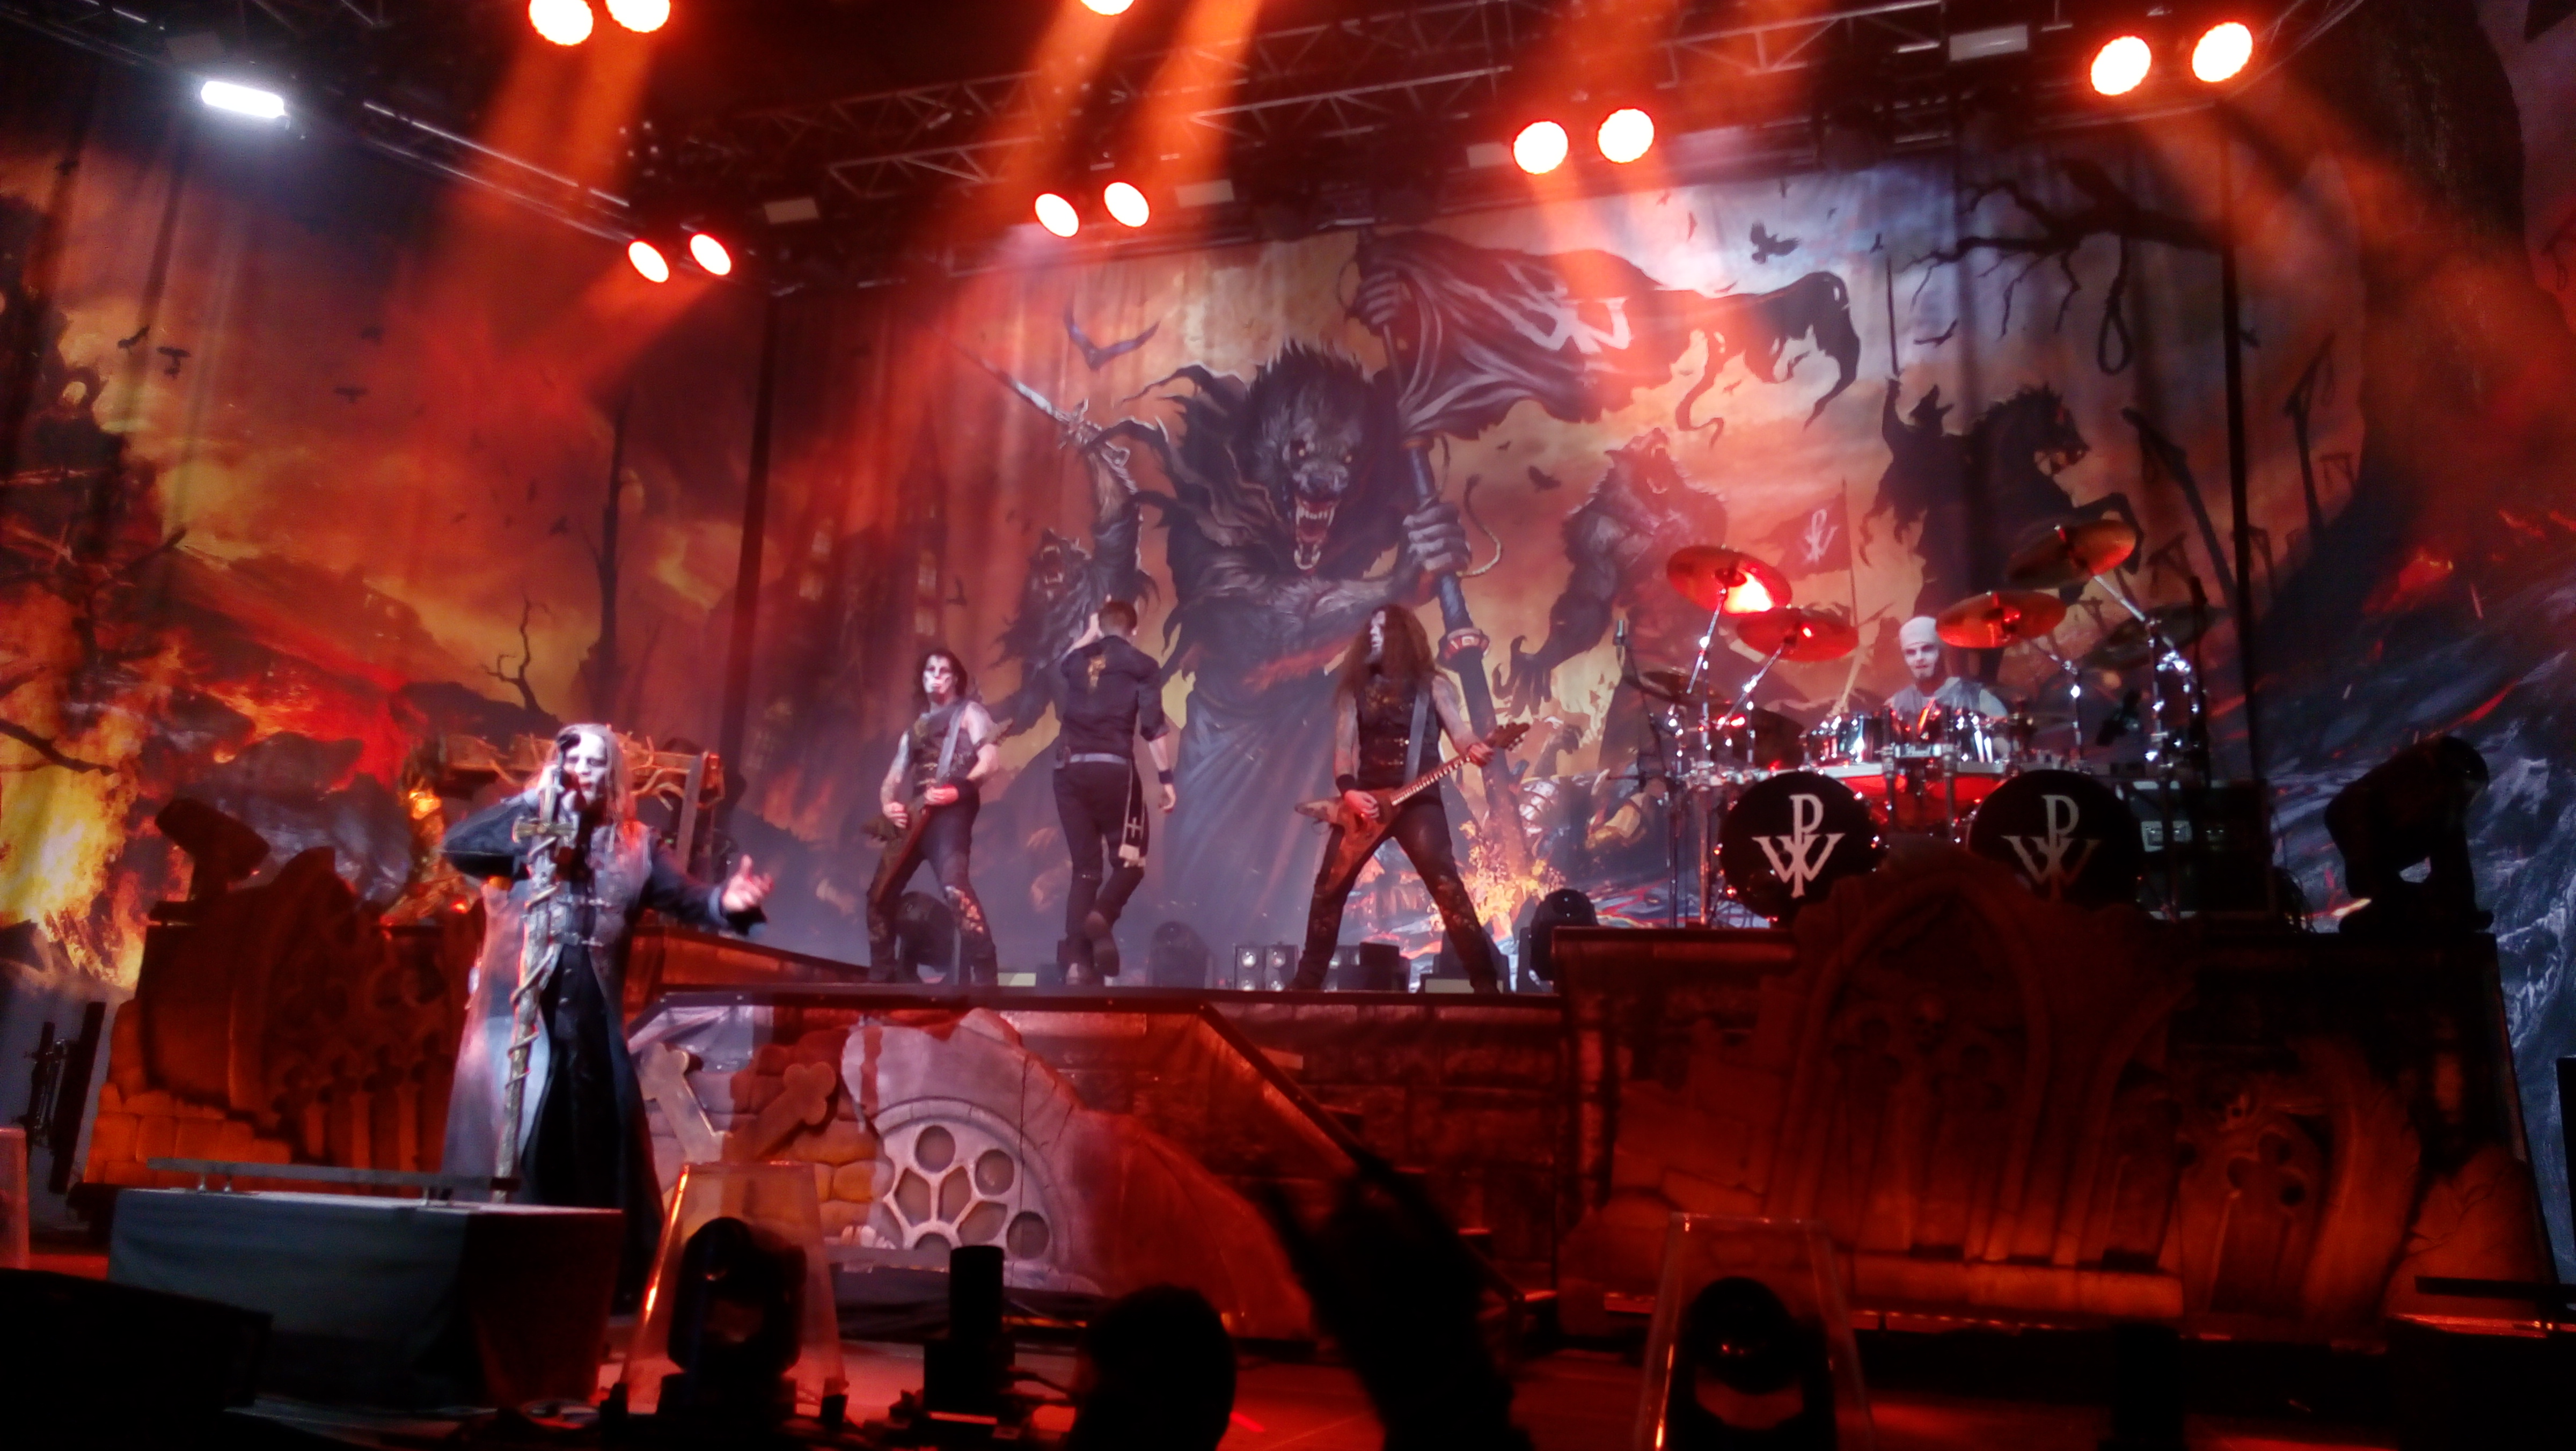 Powerwolf - Wikipedia